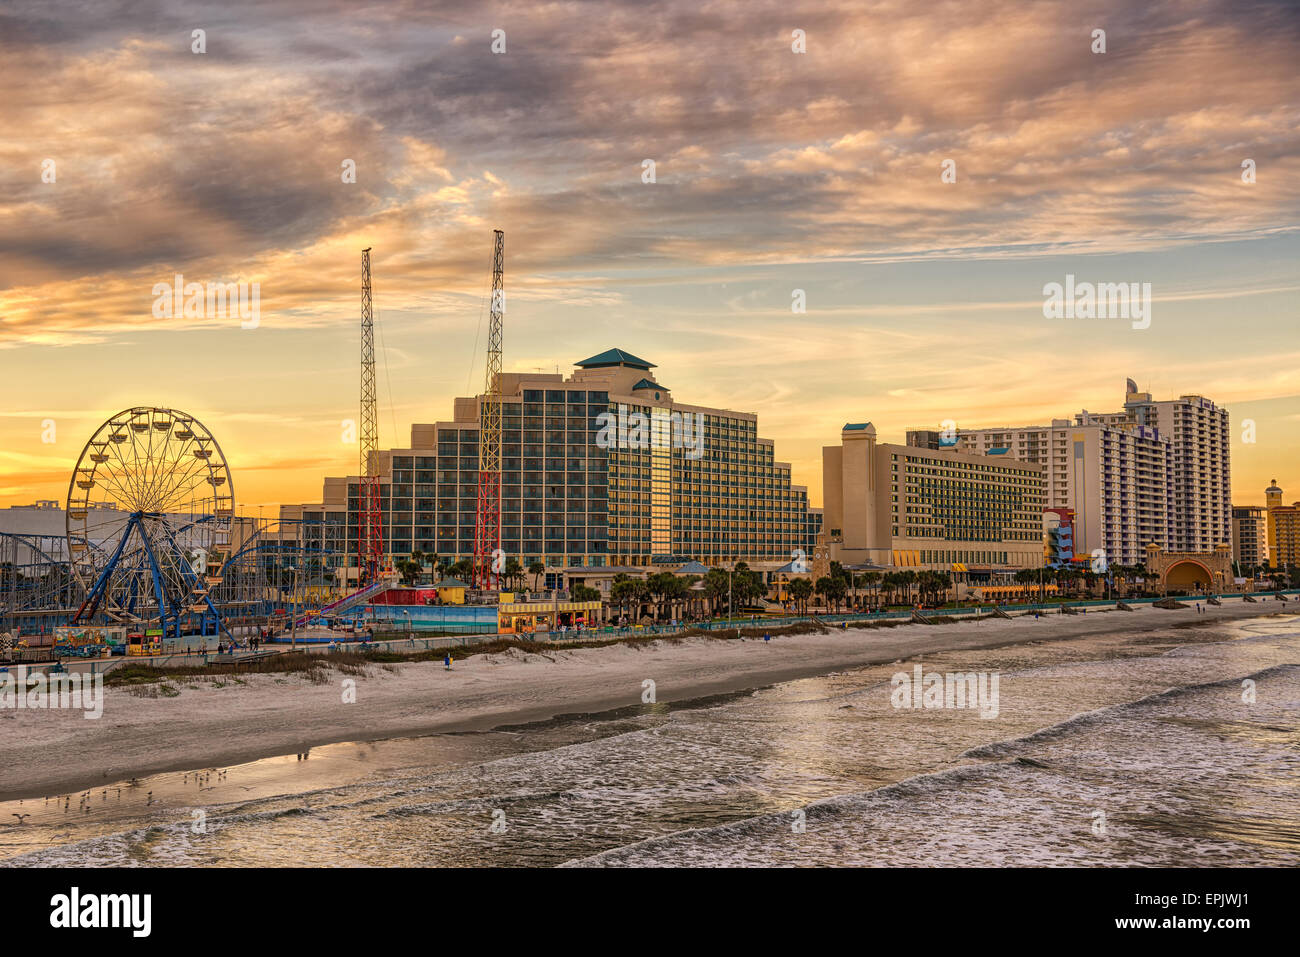 Toits de Daytona Beach, Floride, au coucher du soleil du quai de pêche. Photo Stock